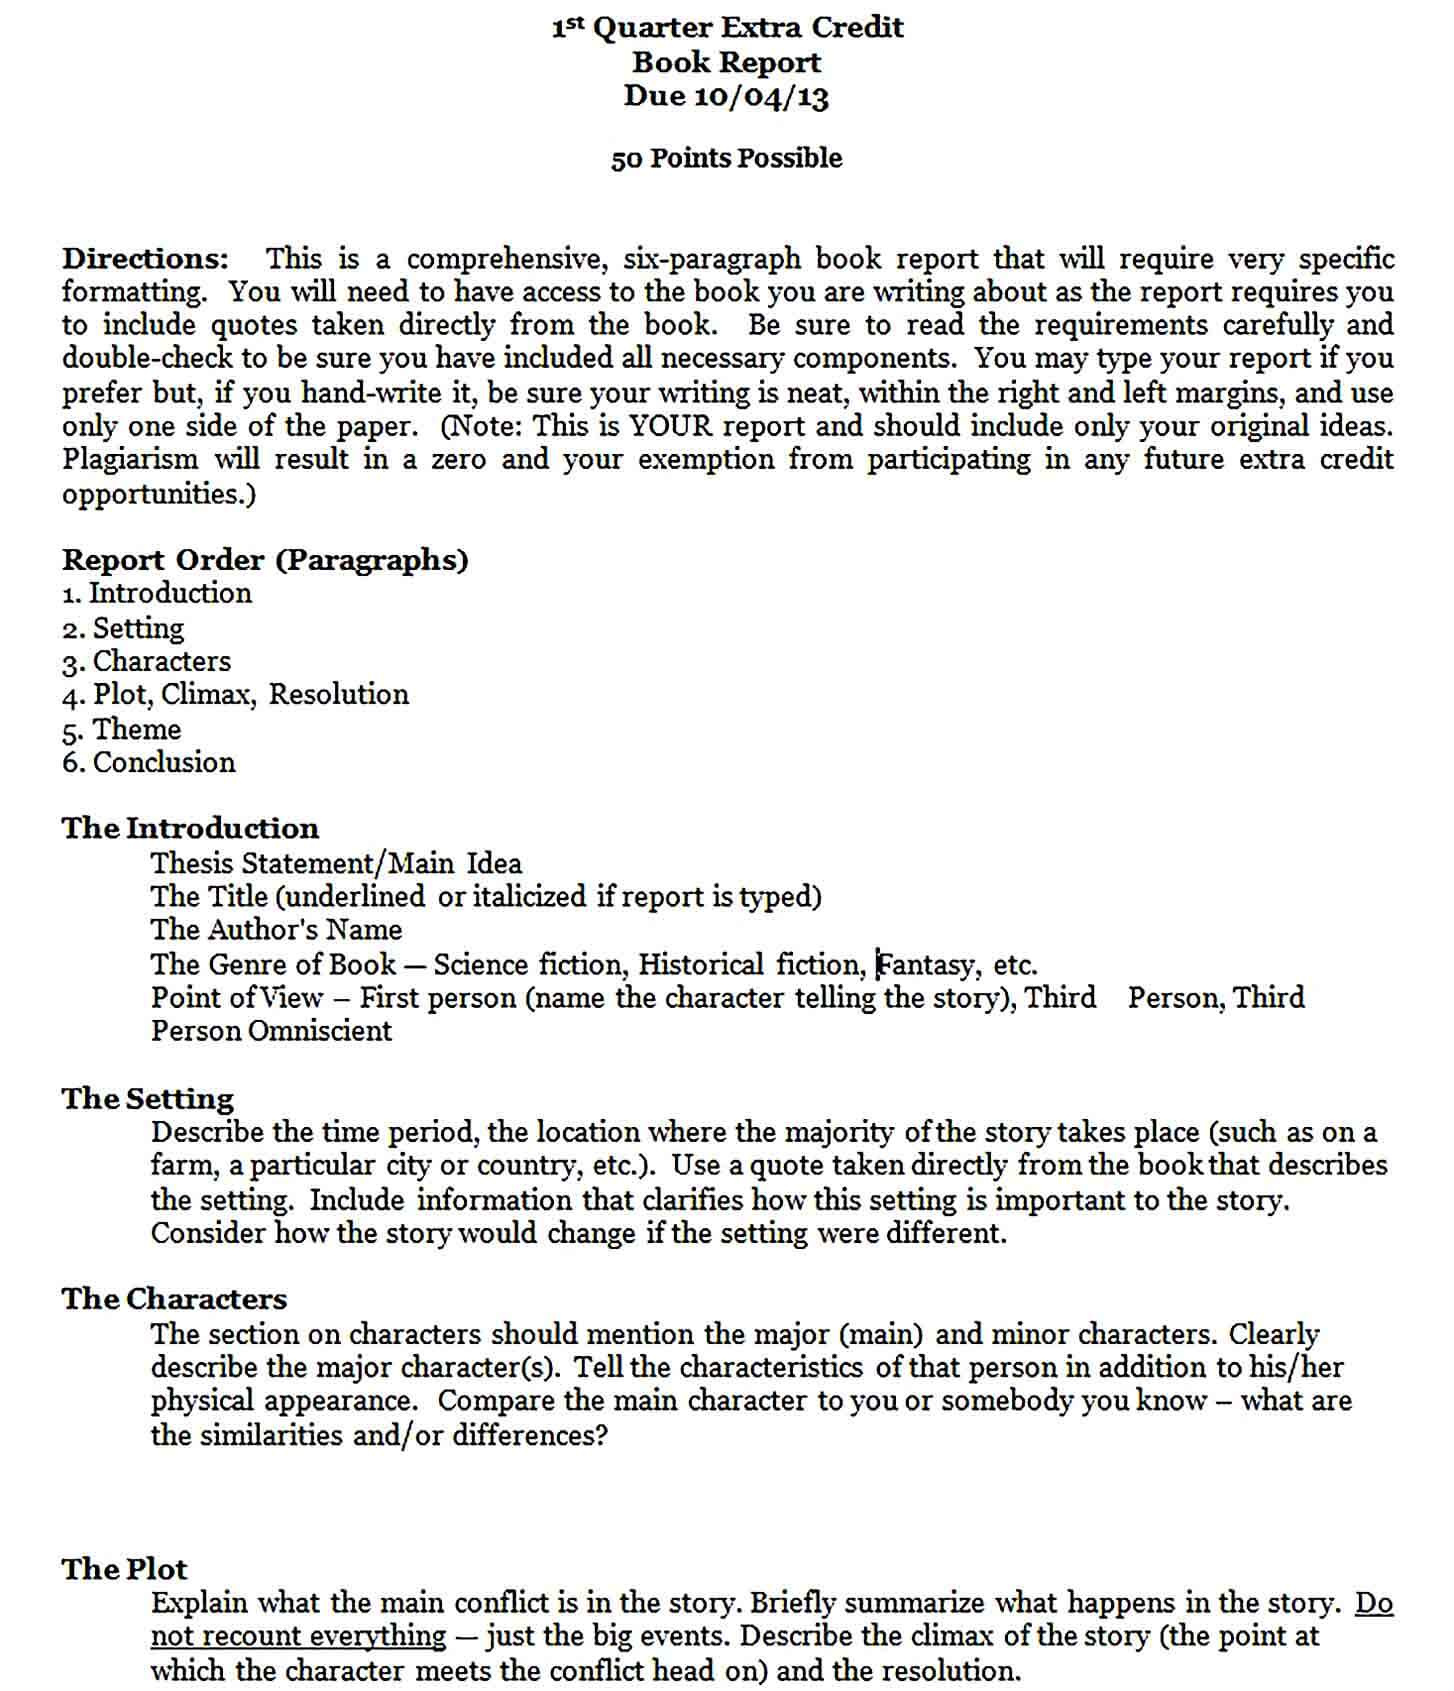 Sample 7th and 8th Grade Book Report Format